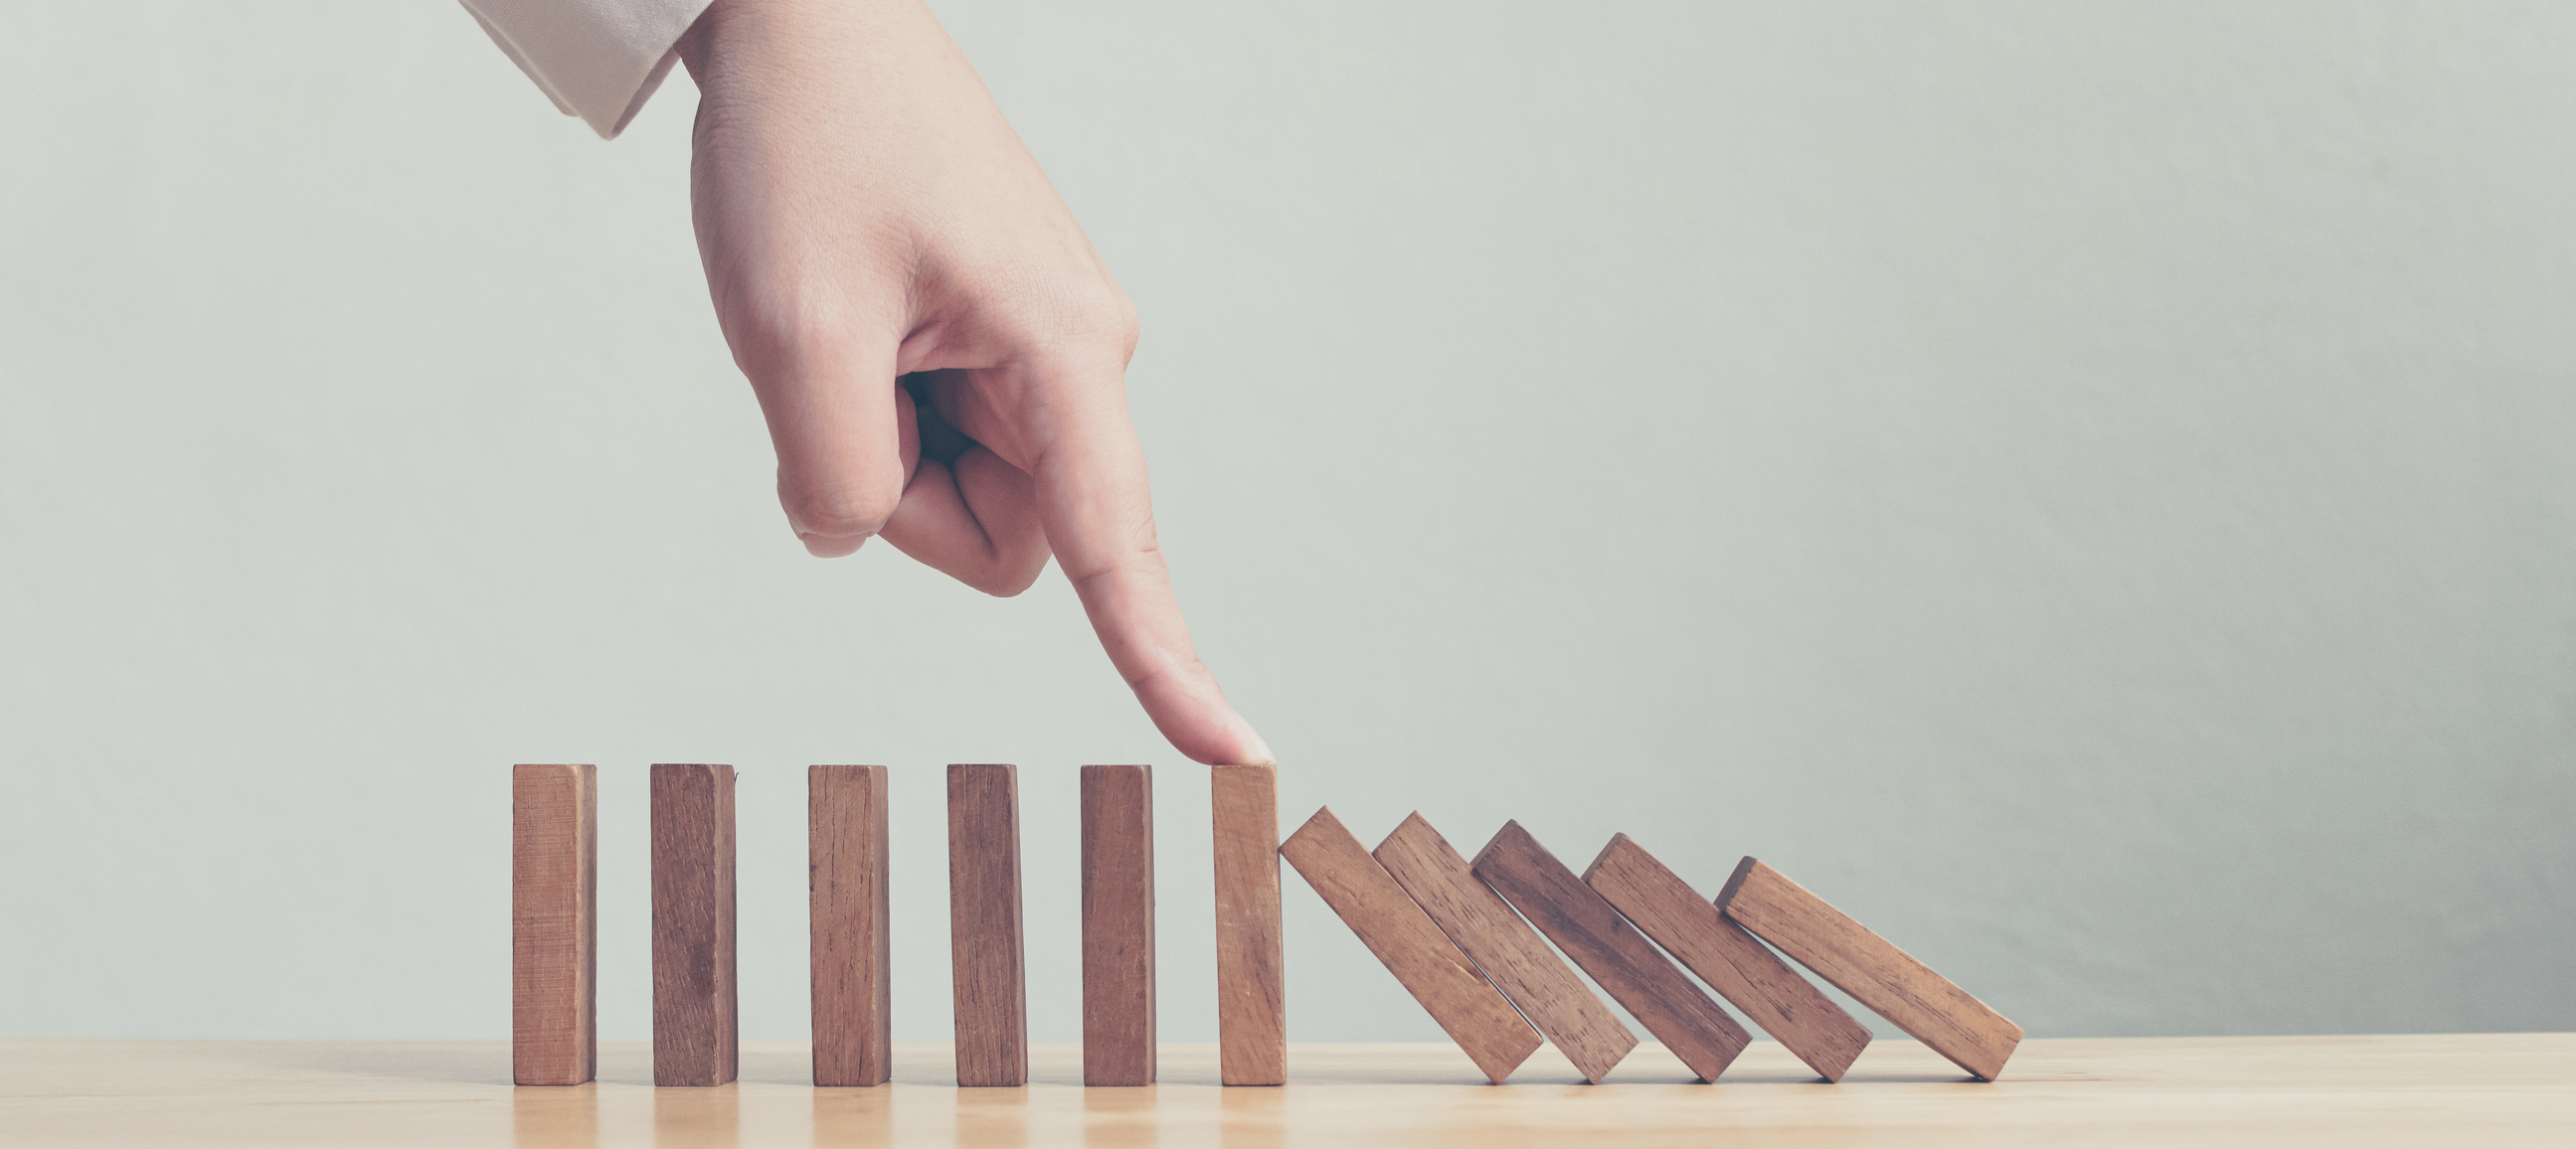 The Biggest Risk is Ignoring Project Risk Management